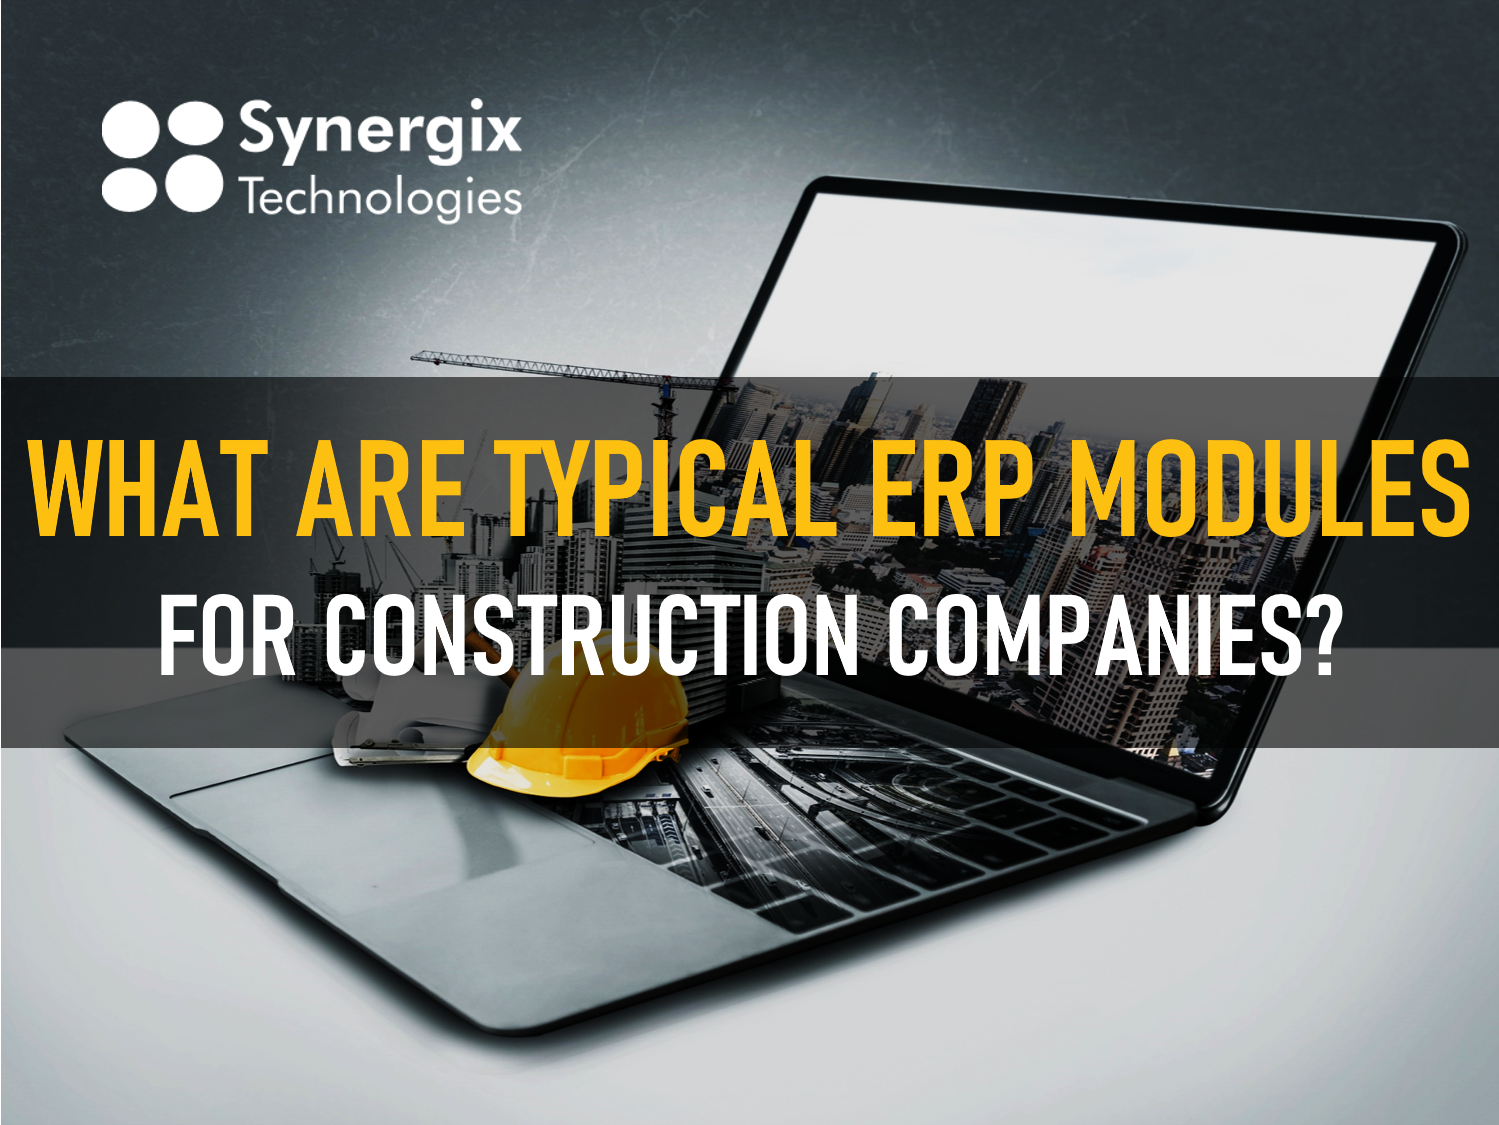 What Are Typical ERP Modules For Construction Companies?